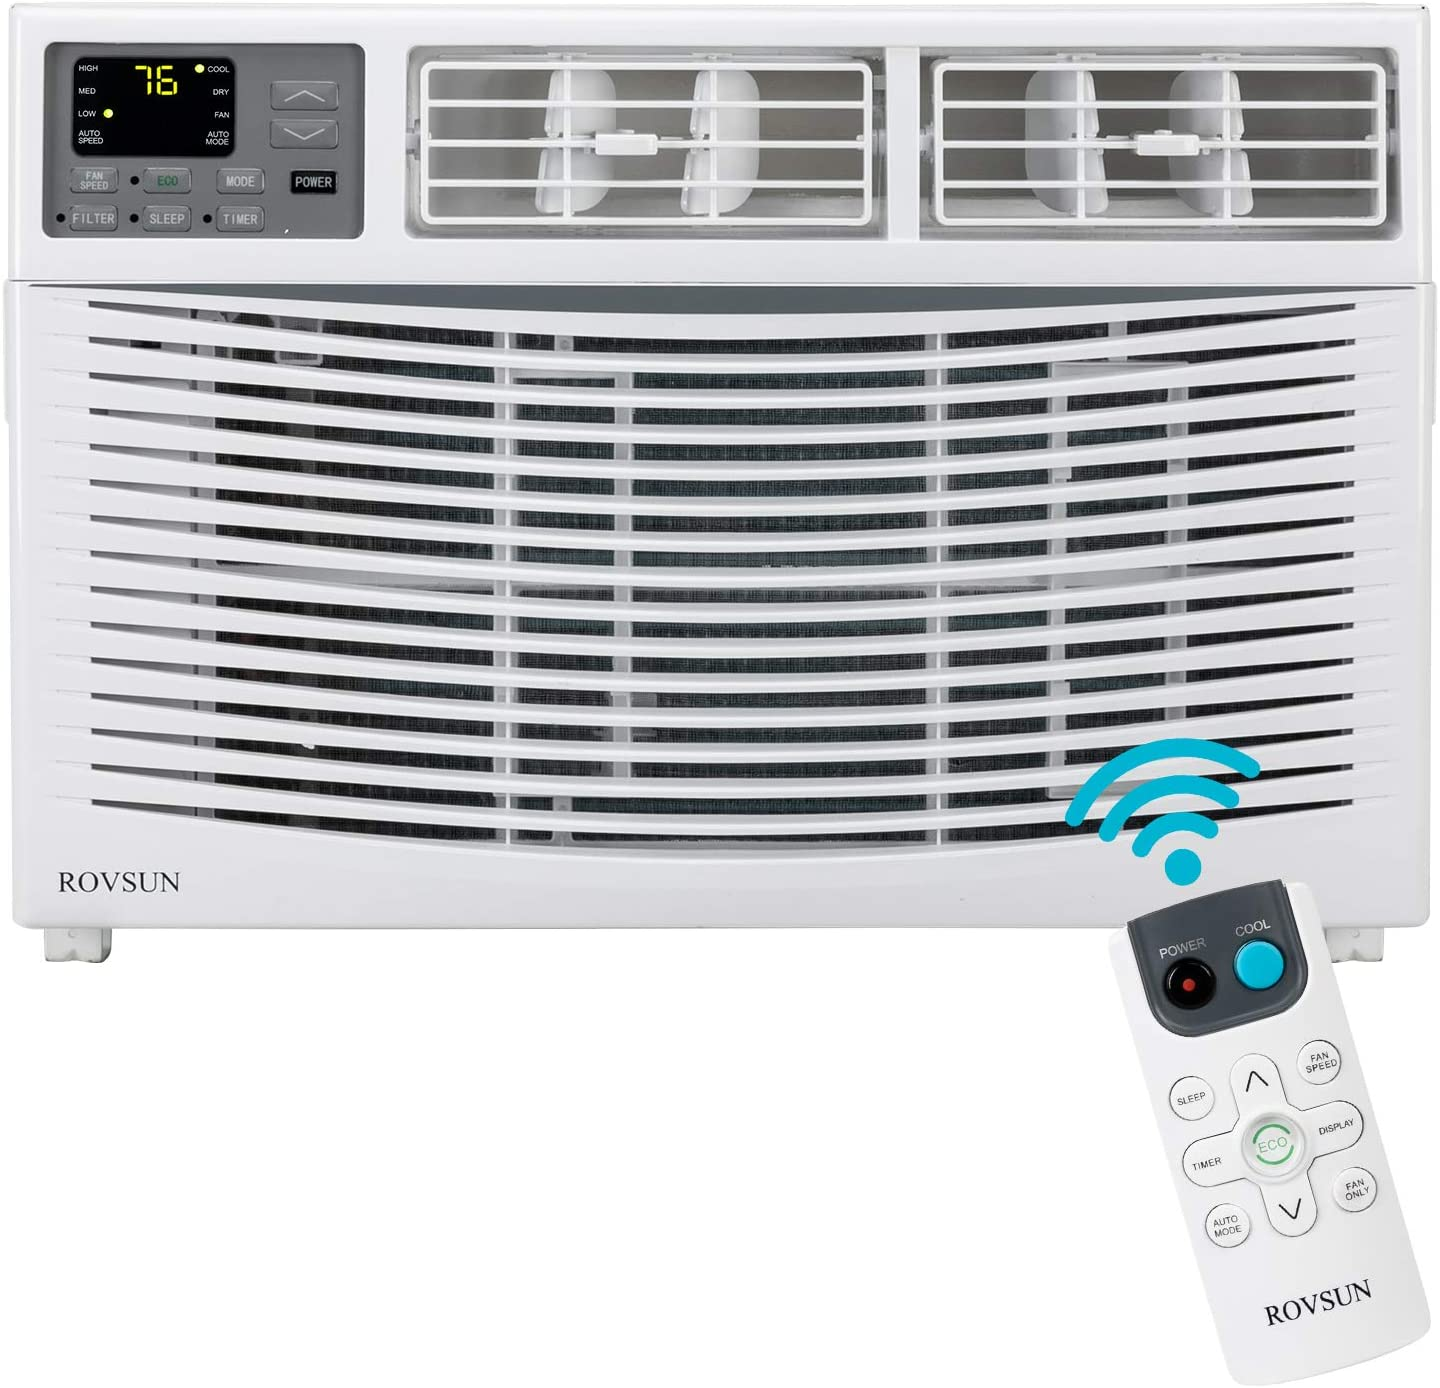 Outlet sale feature ROVSUN 8000 BTU Window Limited time sale Air Conditioner AC wi Saving Unit Energy